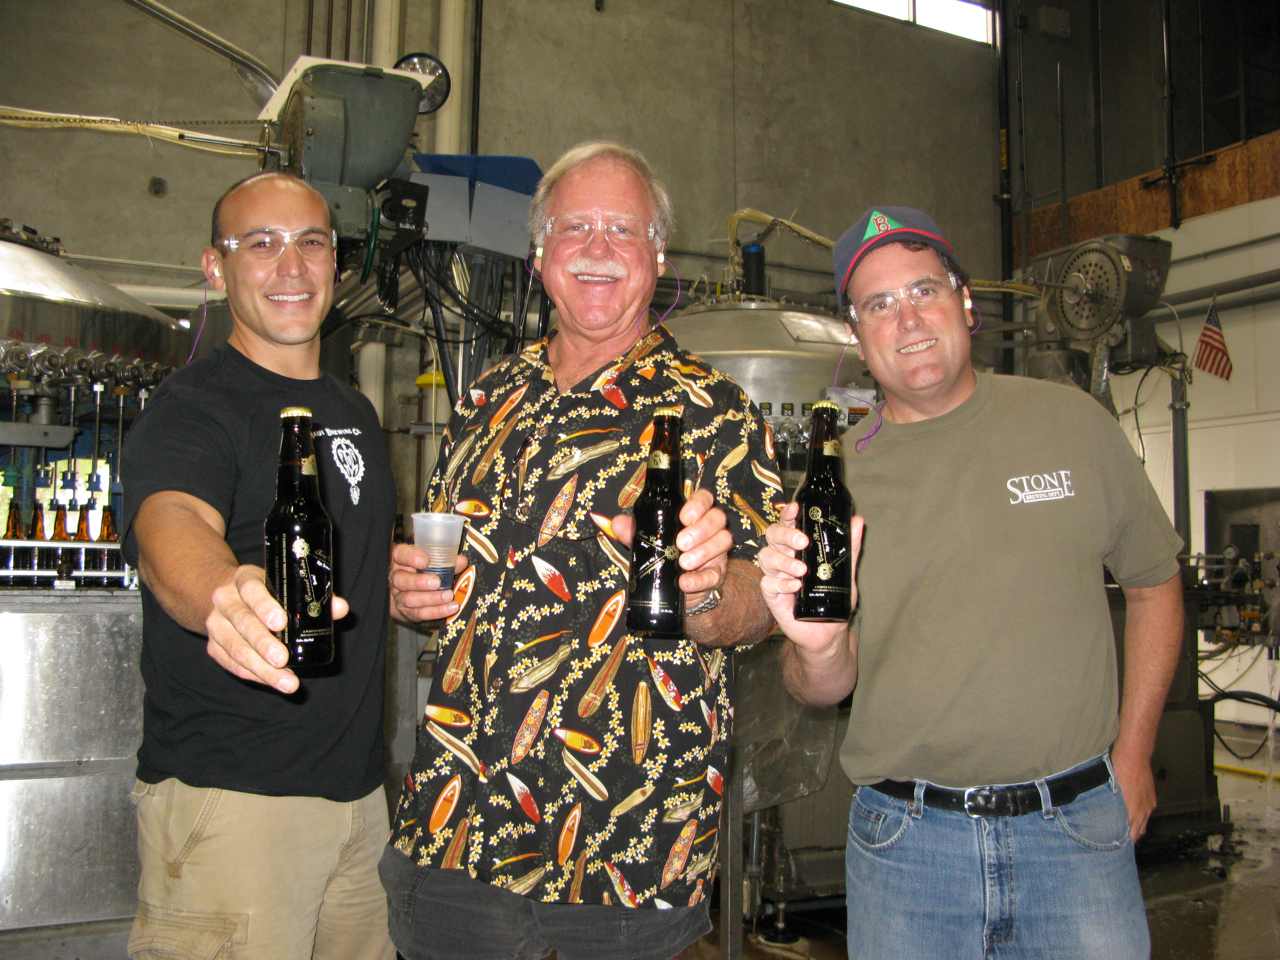 The masterminds behnd the beer (from left to right): Garrett Marrero from Maui Brewing Co., Homebrewer Ken Schmidt, and Stone Head Brewer Mitch Steele